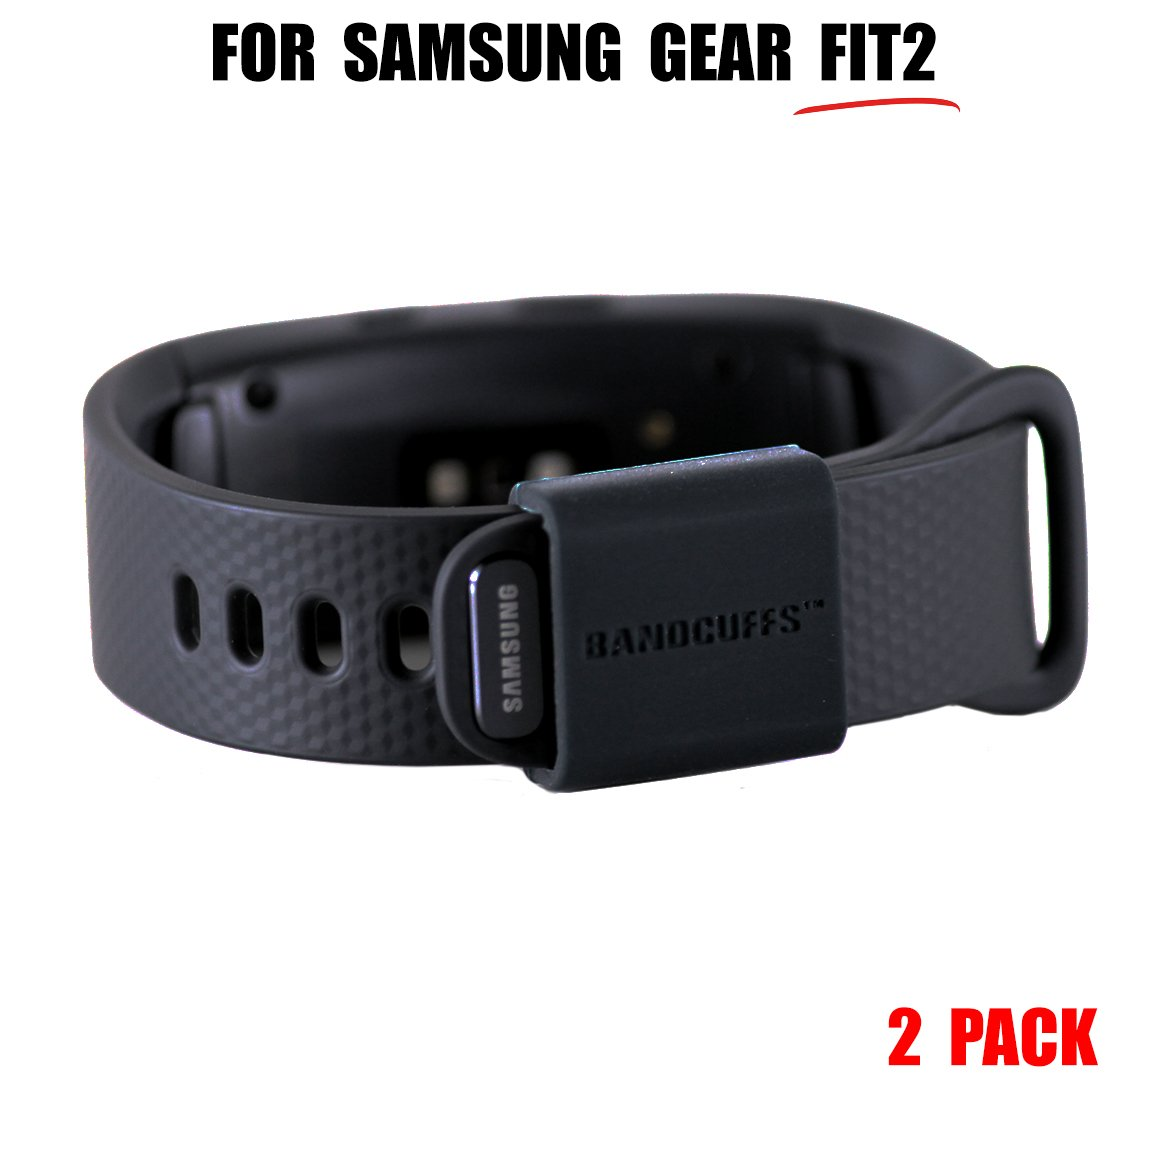 Bandcuffs Brand Security Loop for Samsung Gear Fit 2 2nd Generation Select Your Qty